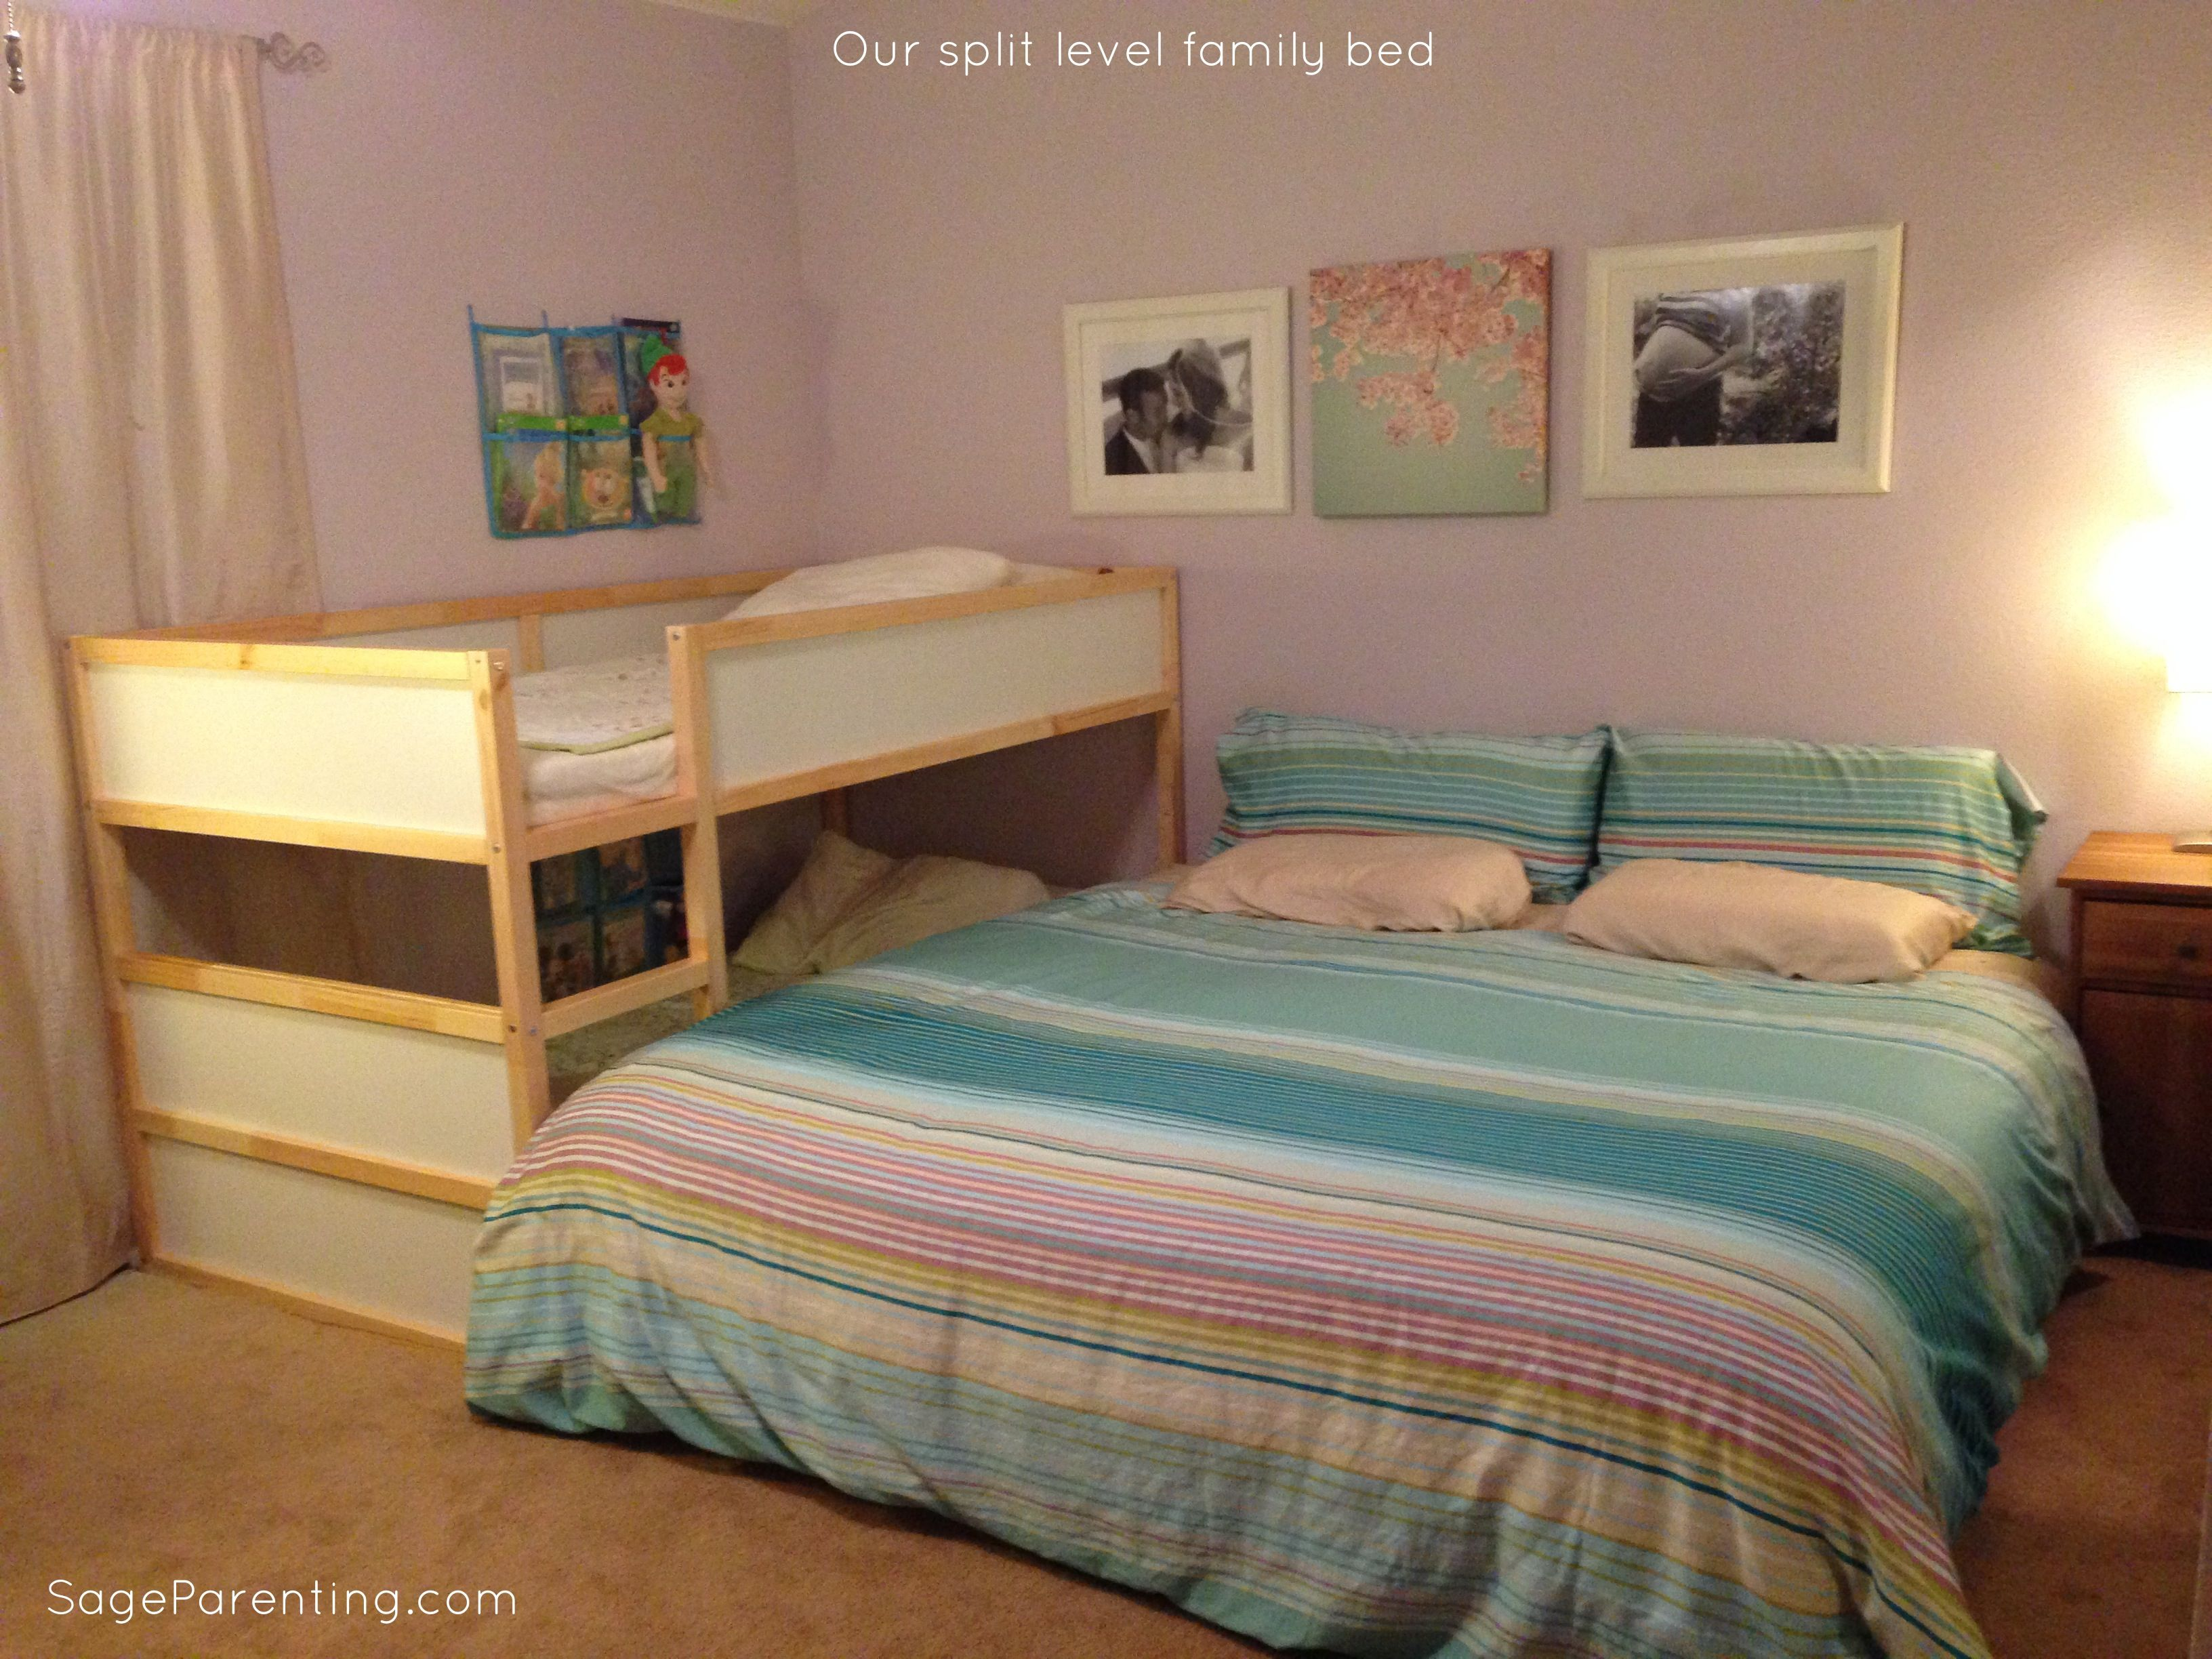 Our split level family bed cosleeping co sleeping for Split bedroom